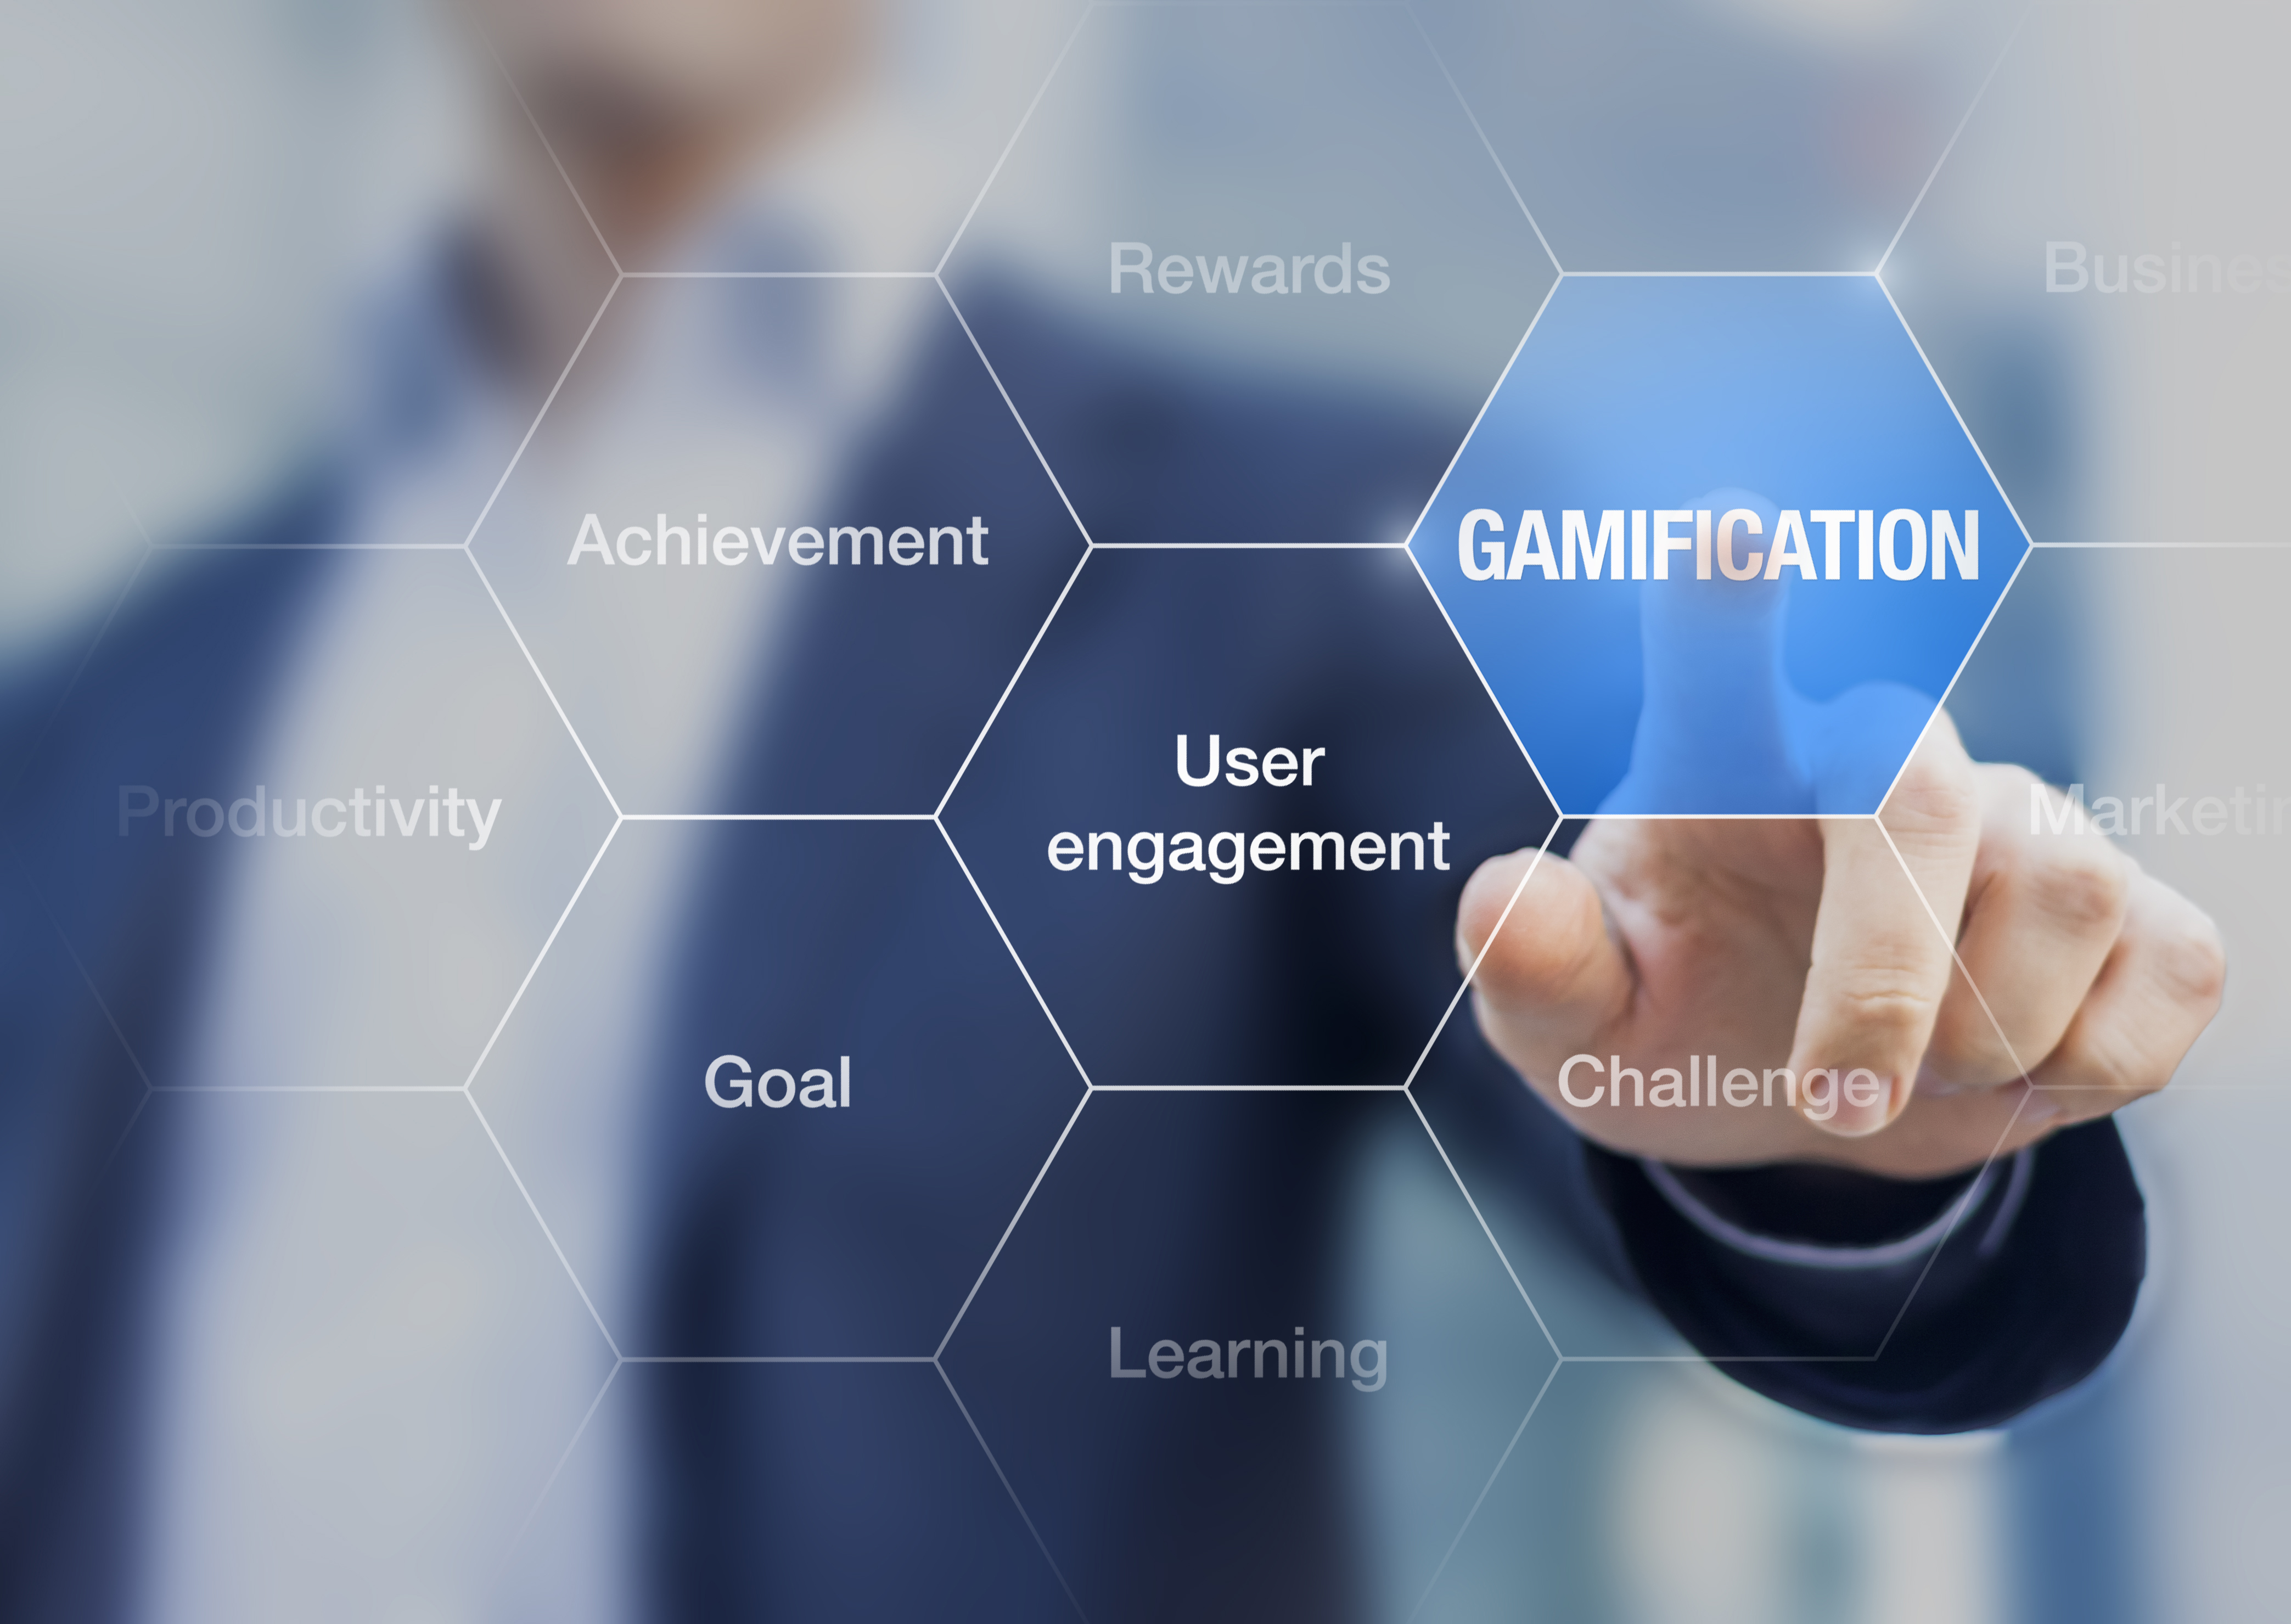 Image of a business man pointing at the word Gamification, user engagement, learning, etc.